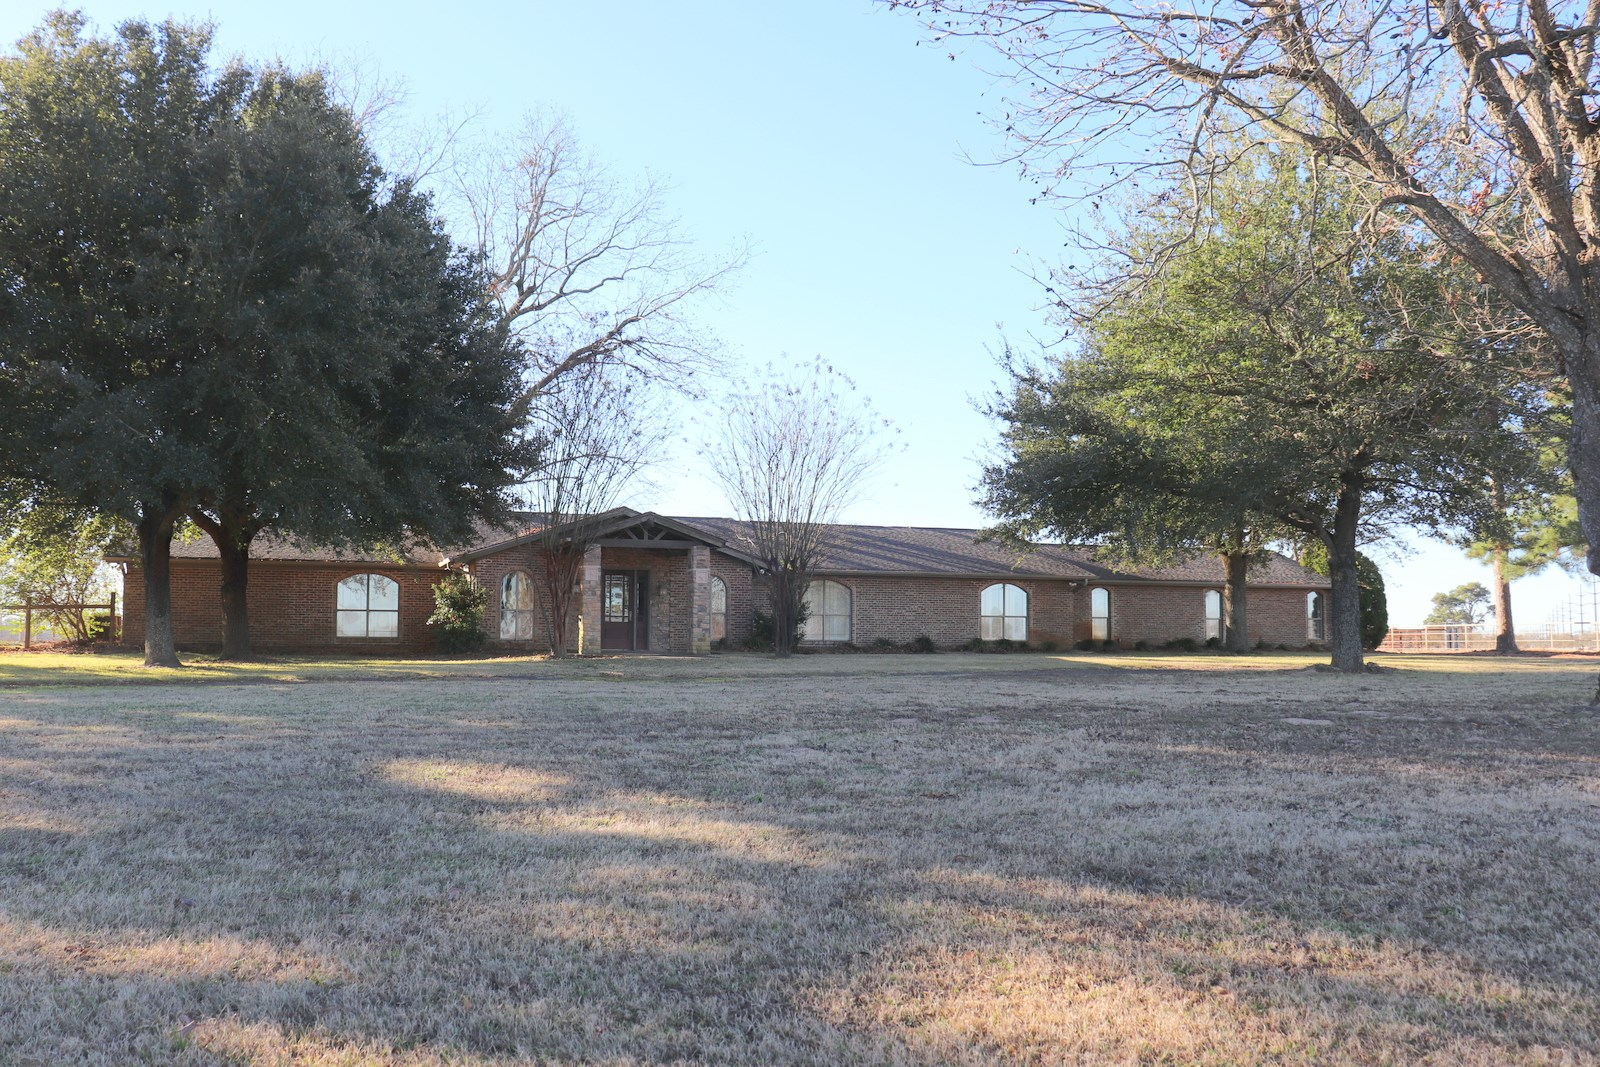 EQUINE - HORSE - COUNTRY HOME - 27 ACRES - EAST TEXAS